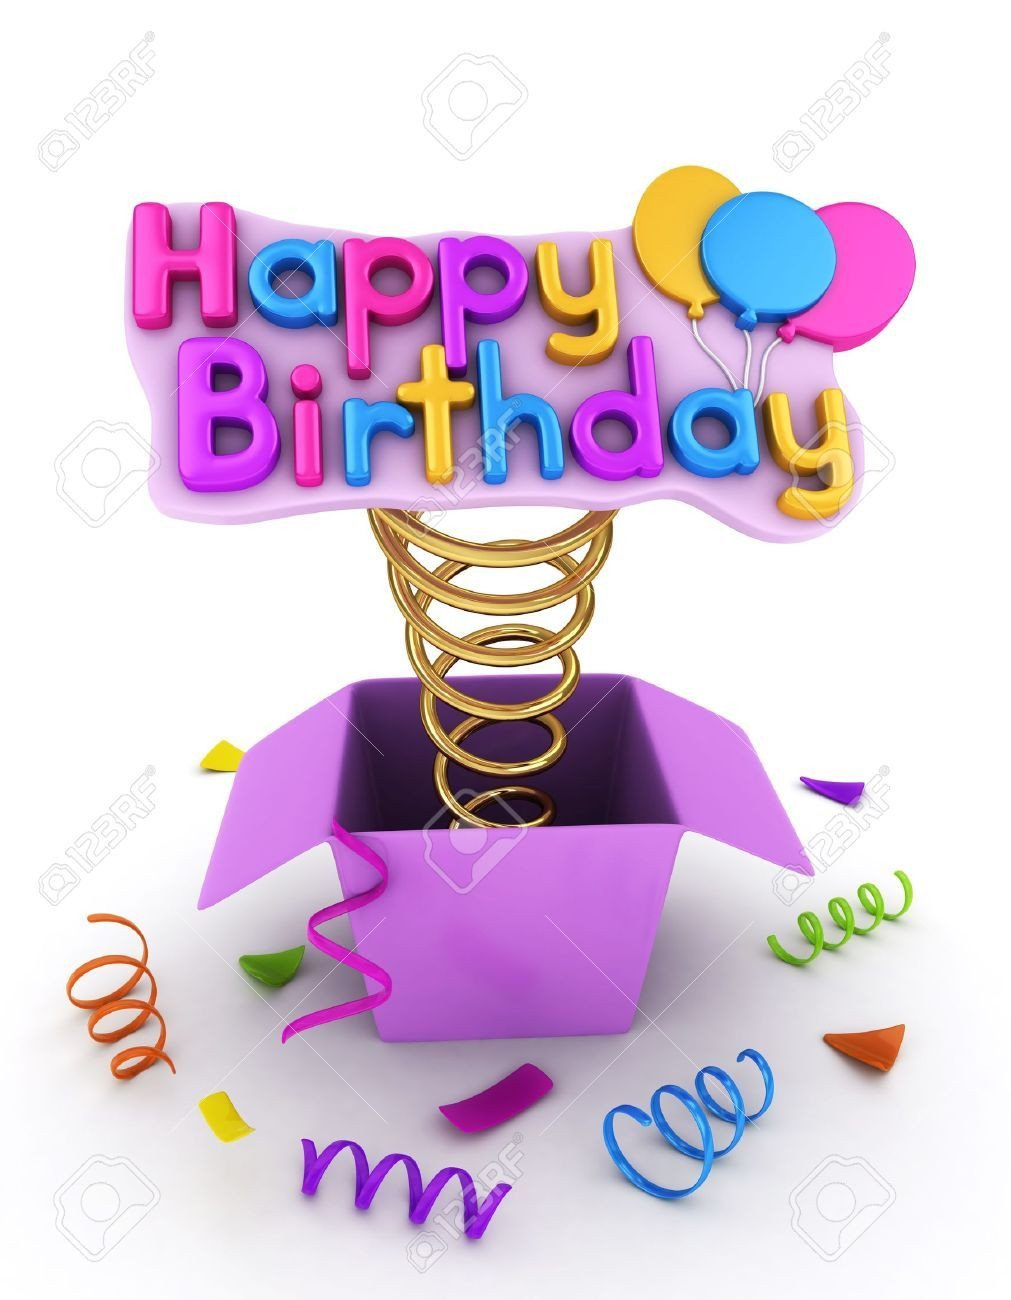 Happy Birthday 3d Images 3d Illustration Of A Gift Box with A Pop Up Happy